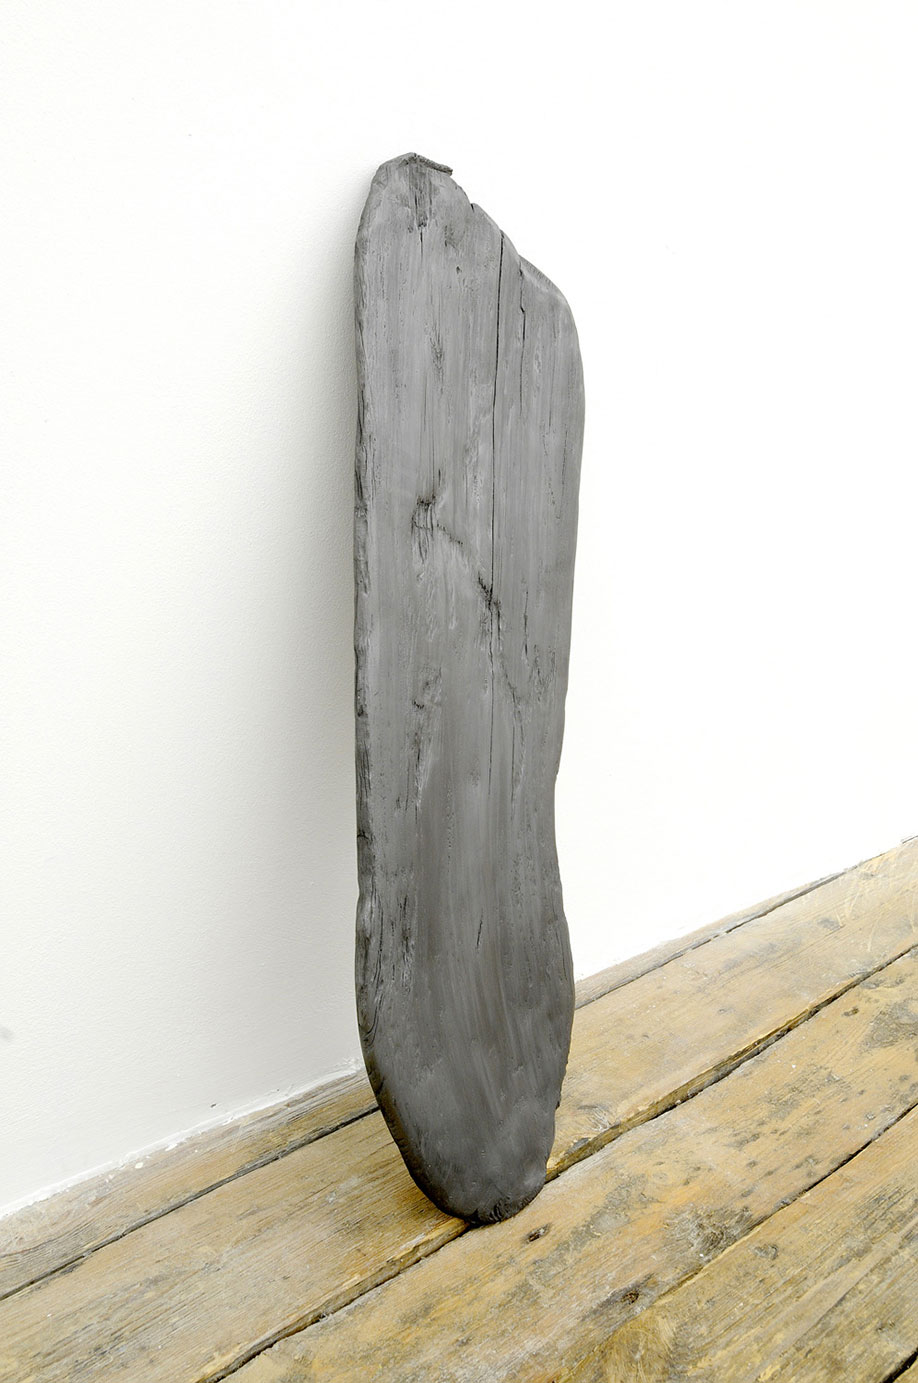 <b>Title:&nbsp;</b>Driftwood<br /><b>Year:&nbsp;</b>2007<br /><b>Medium:&nbsp;</b>Carved graphite<br />